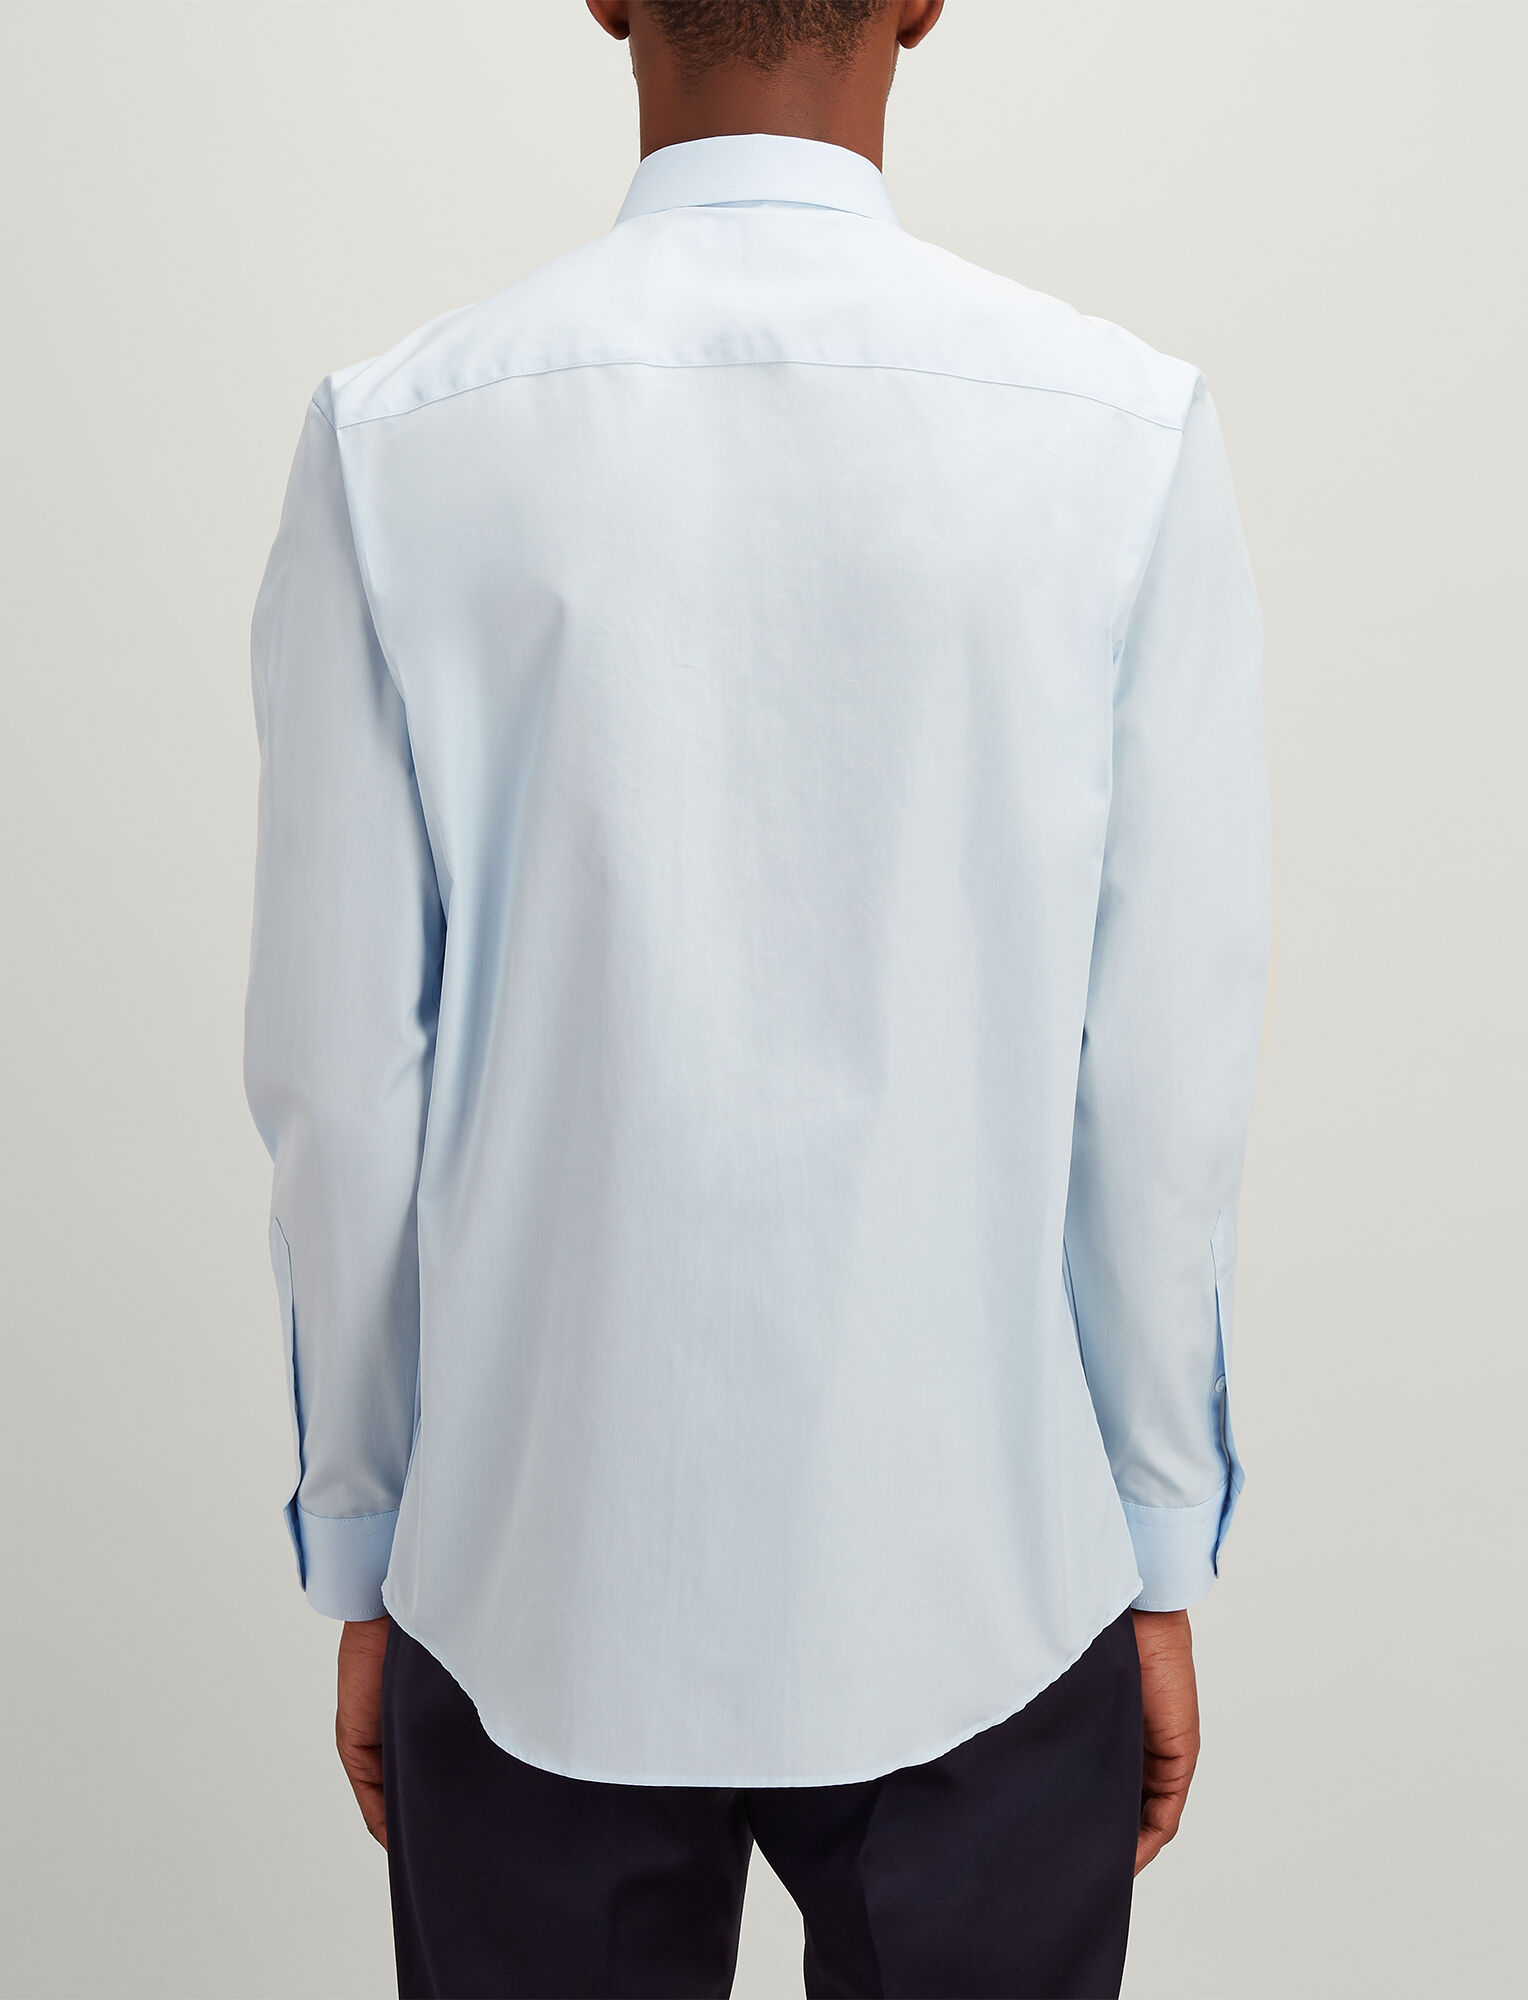 Joseph, Poplin John Shirt, in PALE BLUE